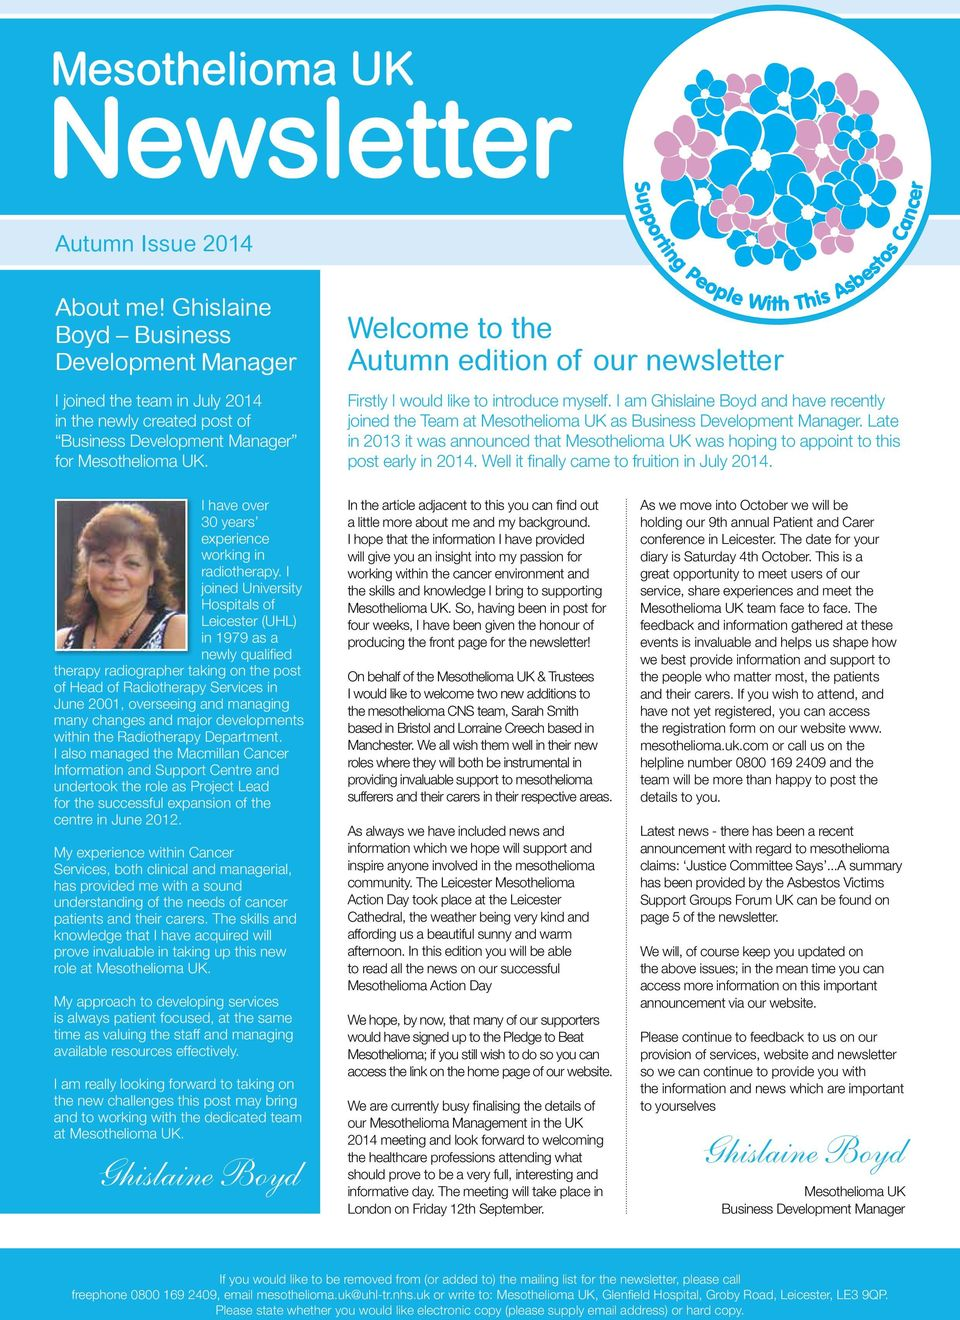 Welcome to the Autumn edition of our newsletter Firstly I would like to introduce myself. I am Ghislaine Boyd and have recently joined the Team at Mesothelioma UK as Business Development Manager.